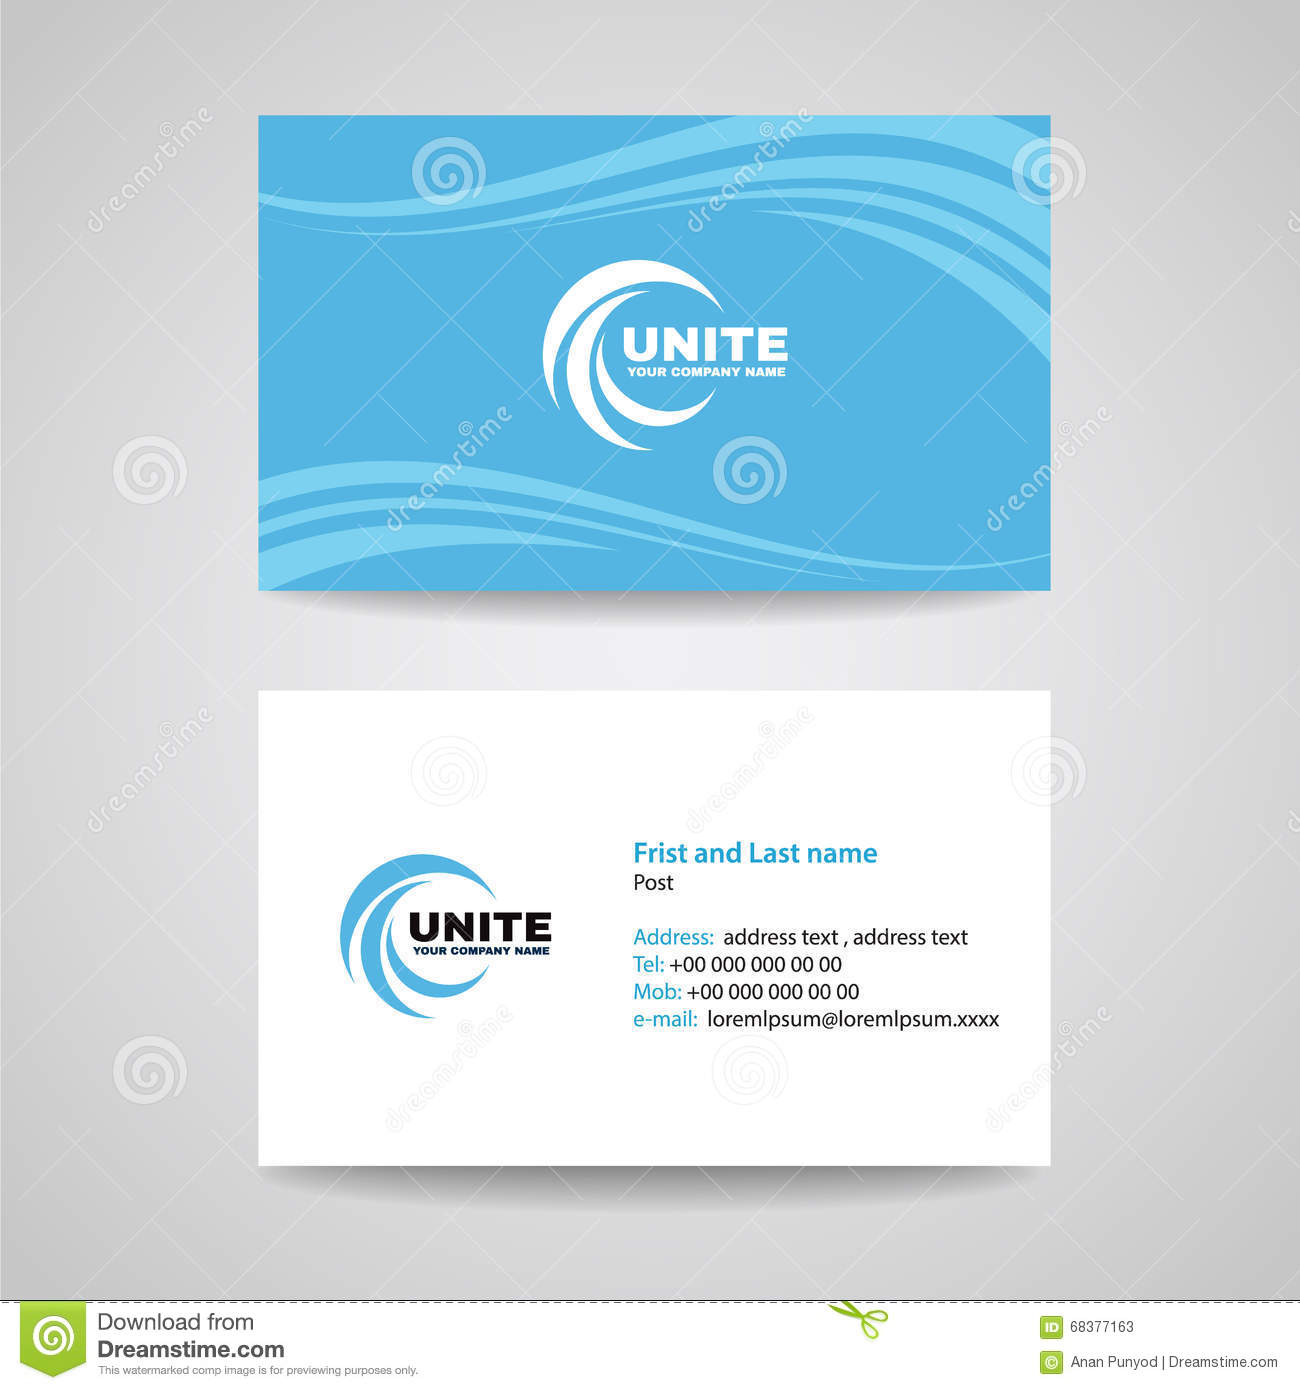 business card background template blue sky wave style